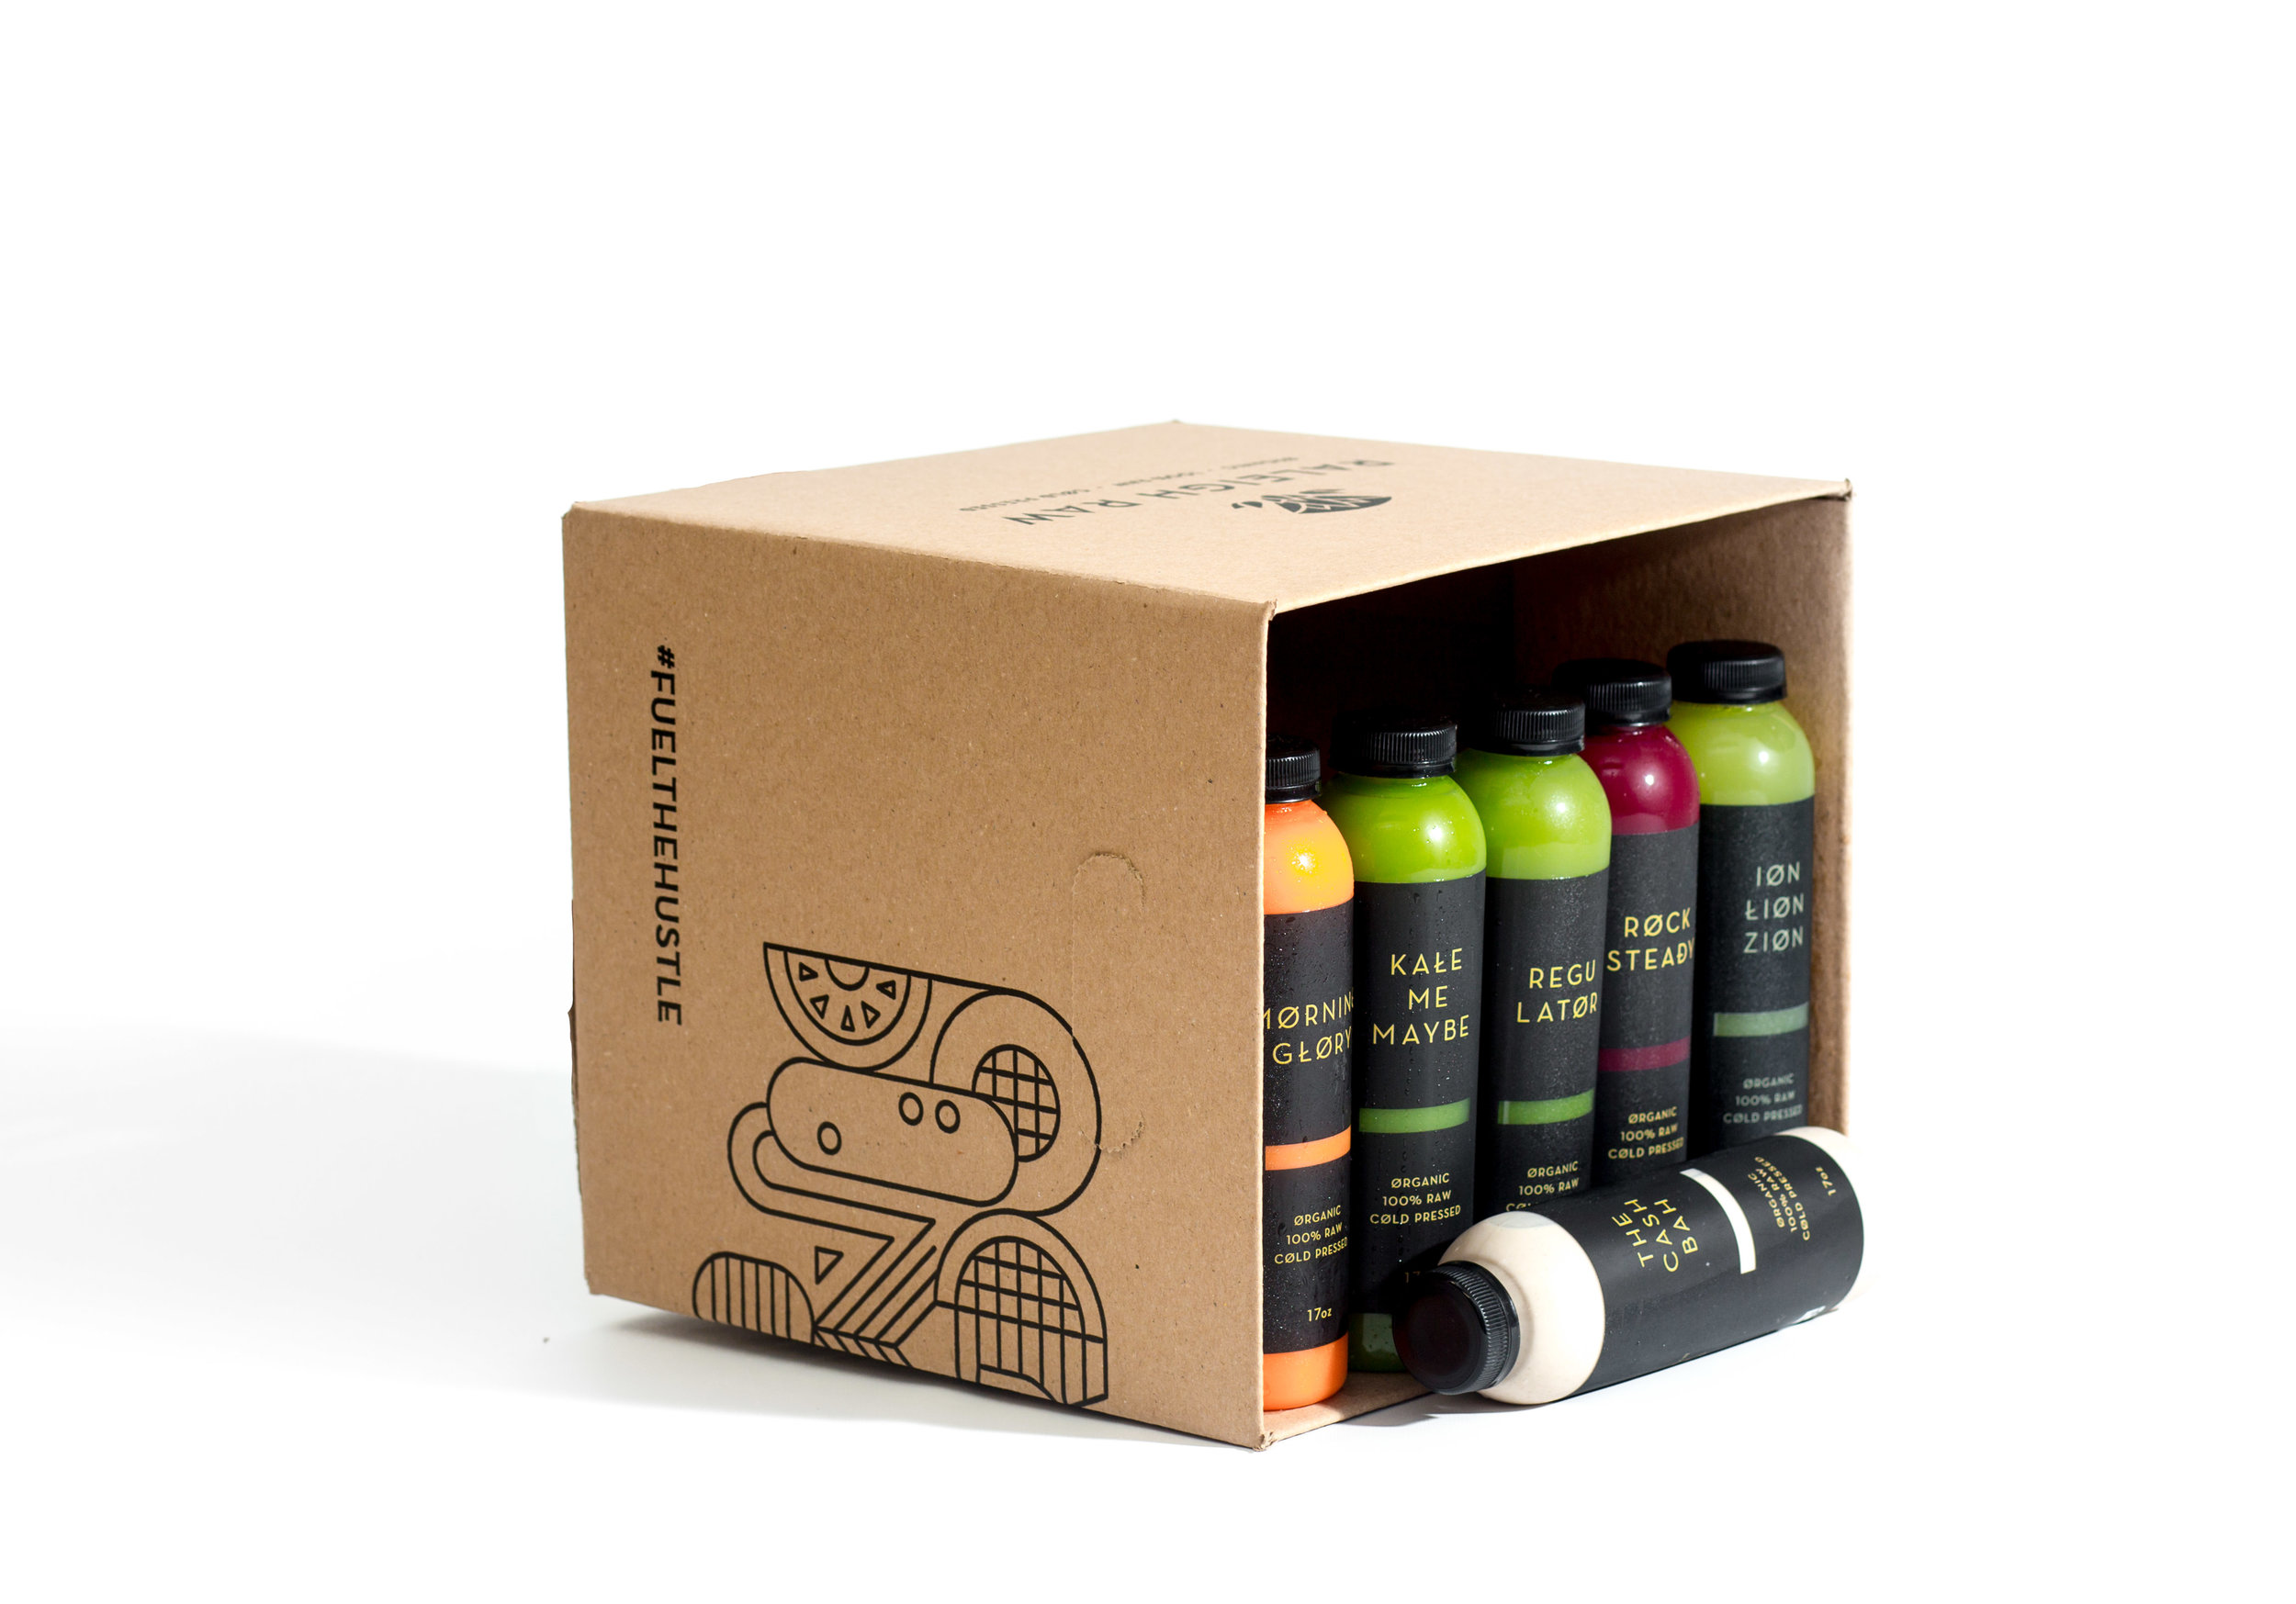 STANDARD CLEANSE - This box was originally developed as our juice cleanse package. It is a balanced box with three greens, two roots, and one nut mylk. The juices are numbered 1-6 to guide you from morning to night with all of the necessary nutrients.Use this as a once-a-week daily cleanse or drink the juices one per day to cleanse your dirty soul with pure vegetables!